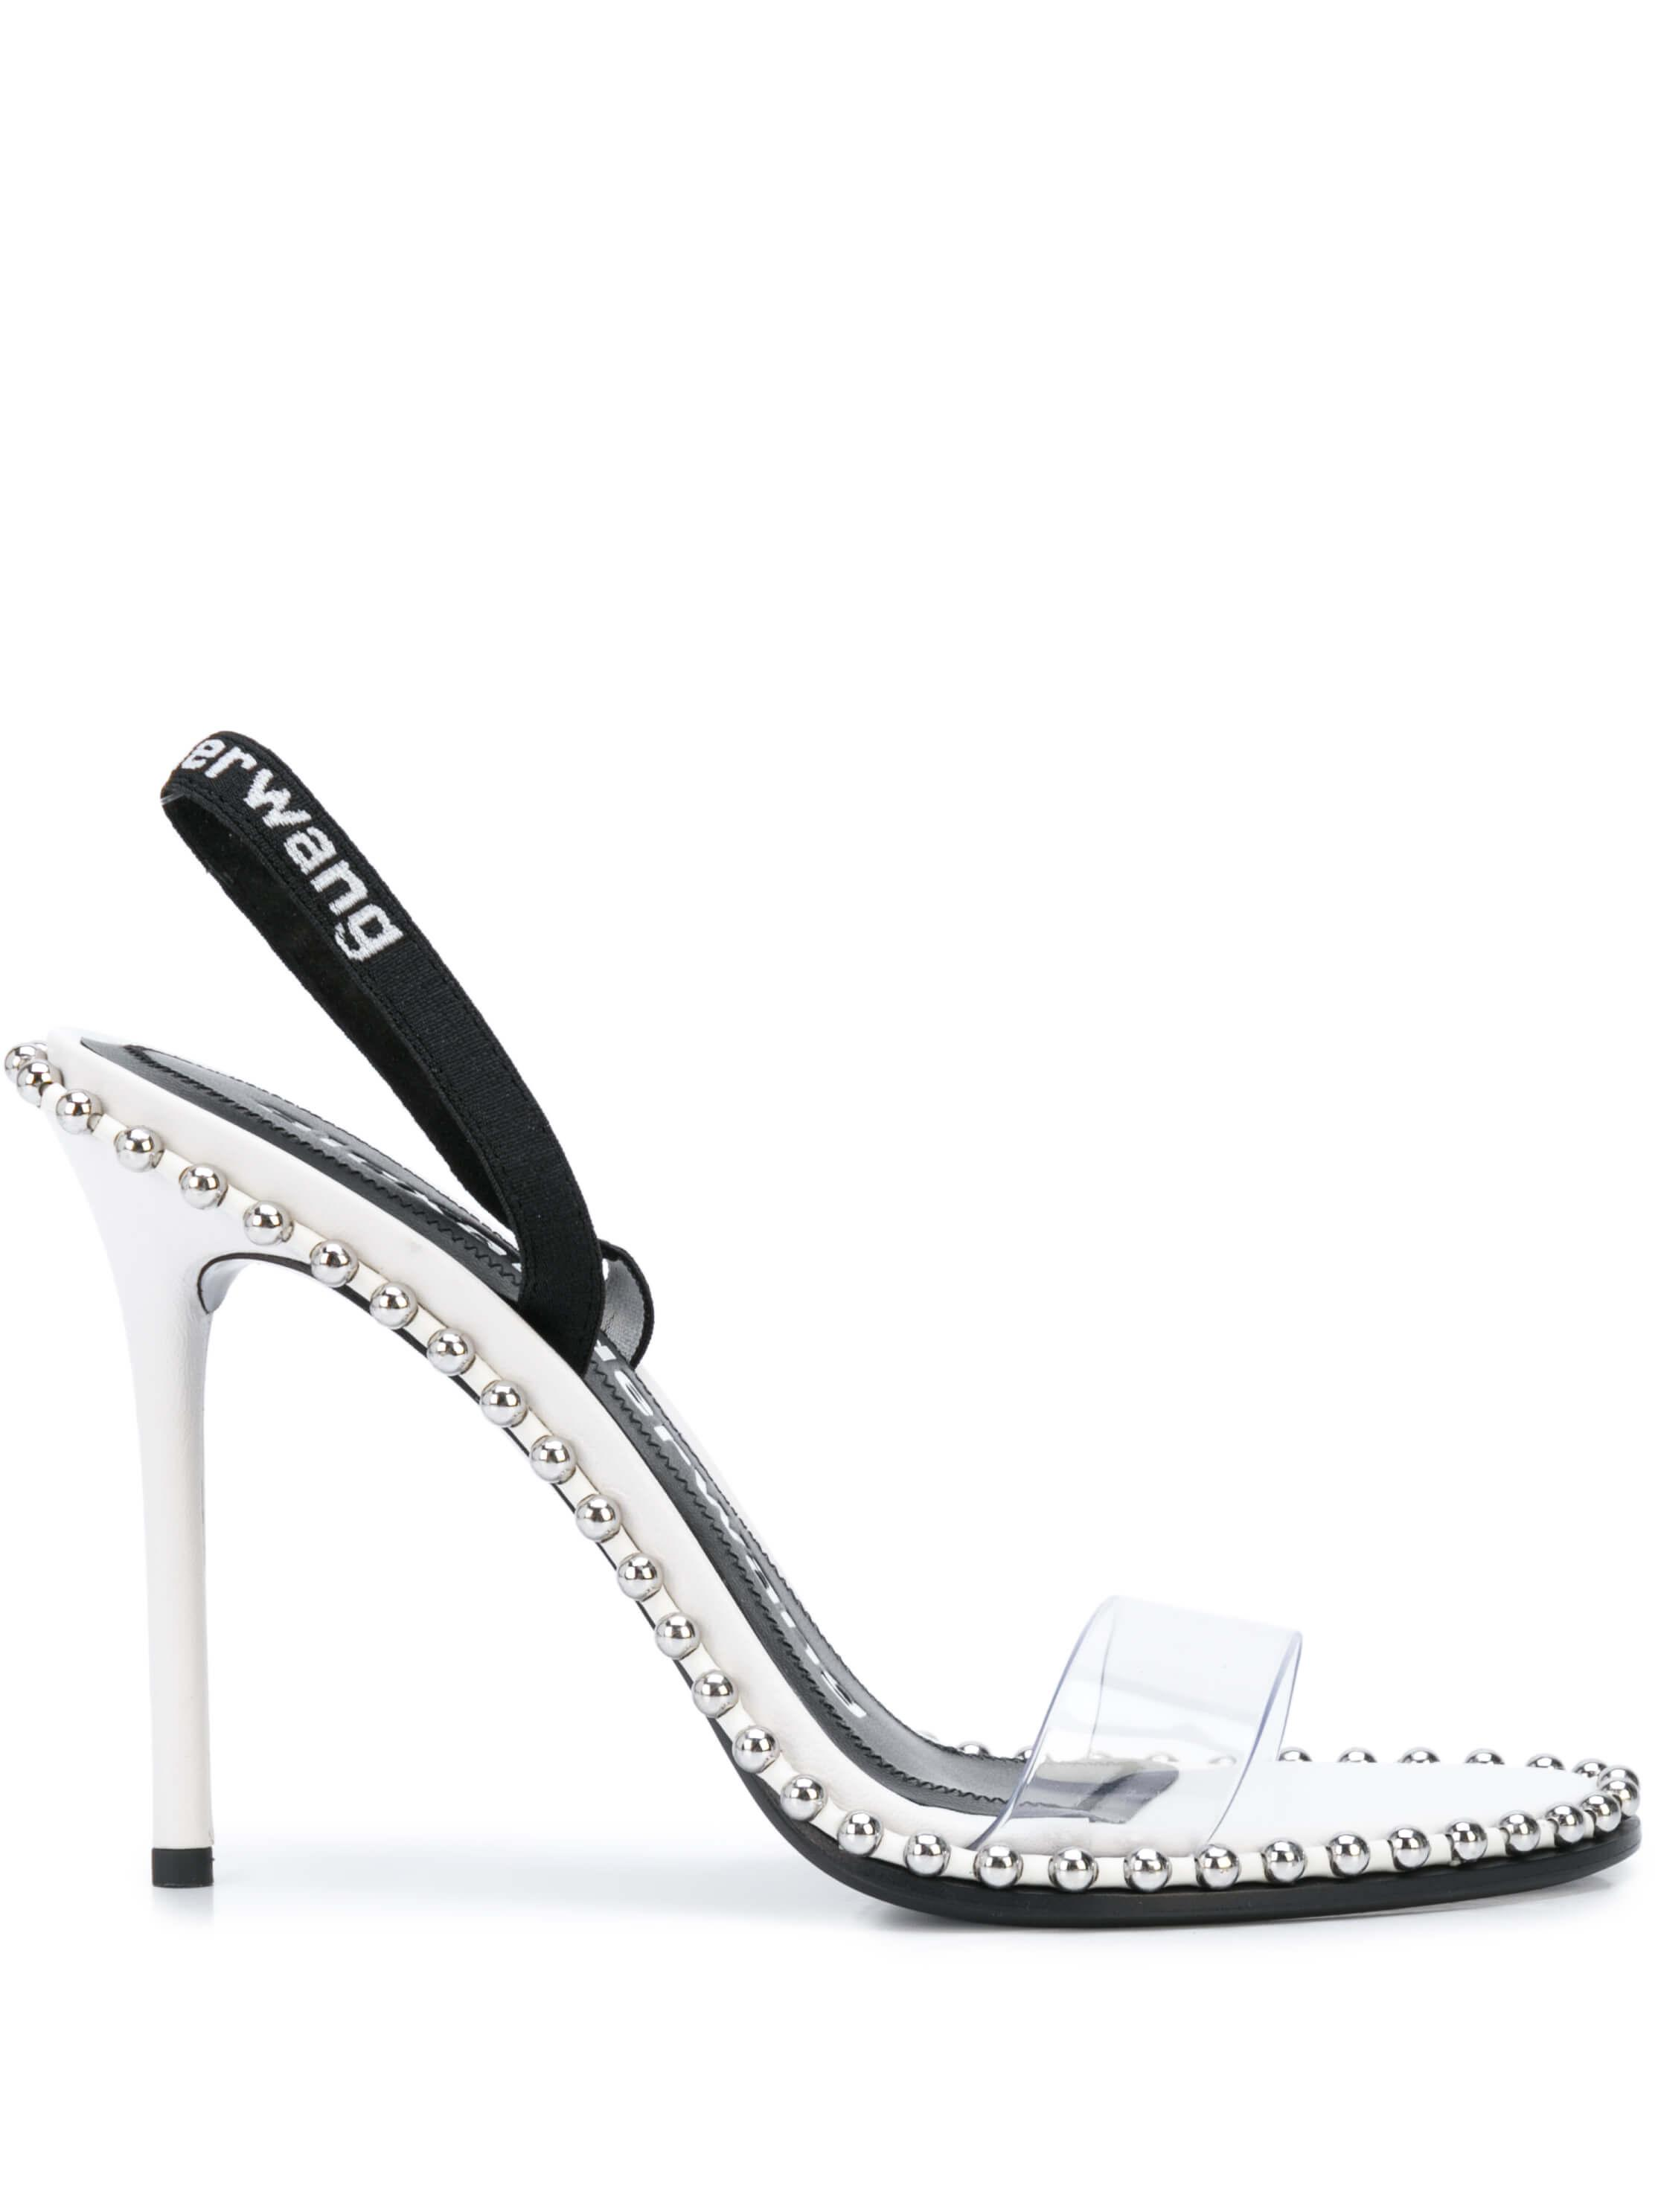 Nova Leather PVC Slingback With Logo